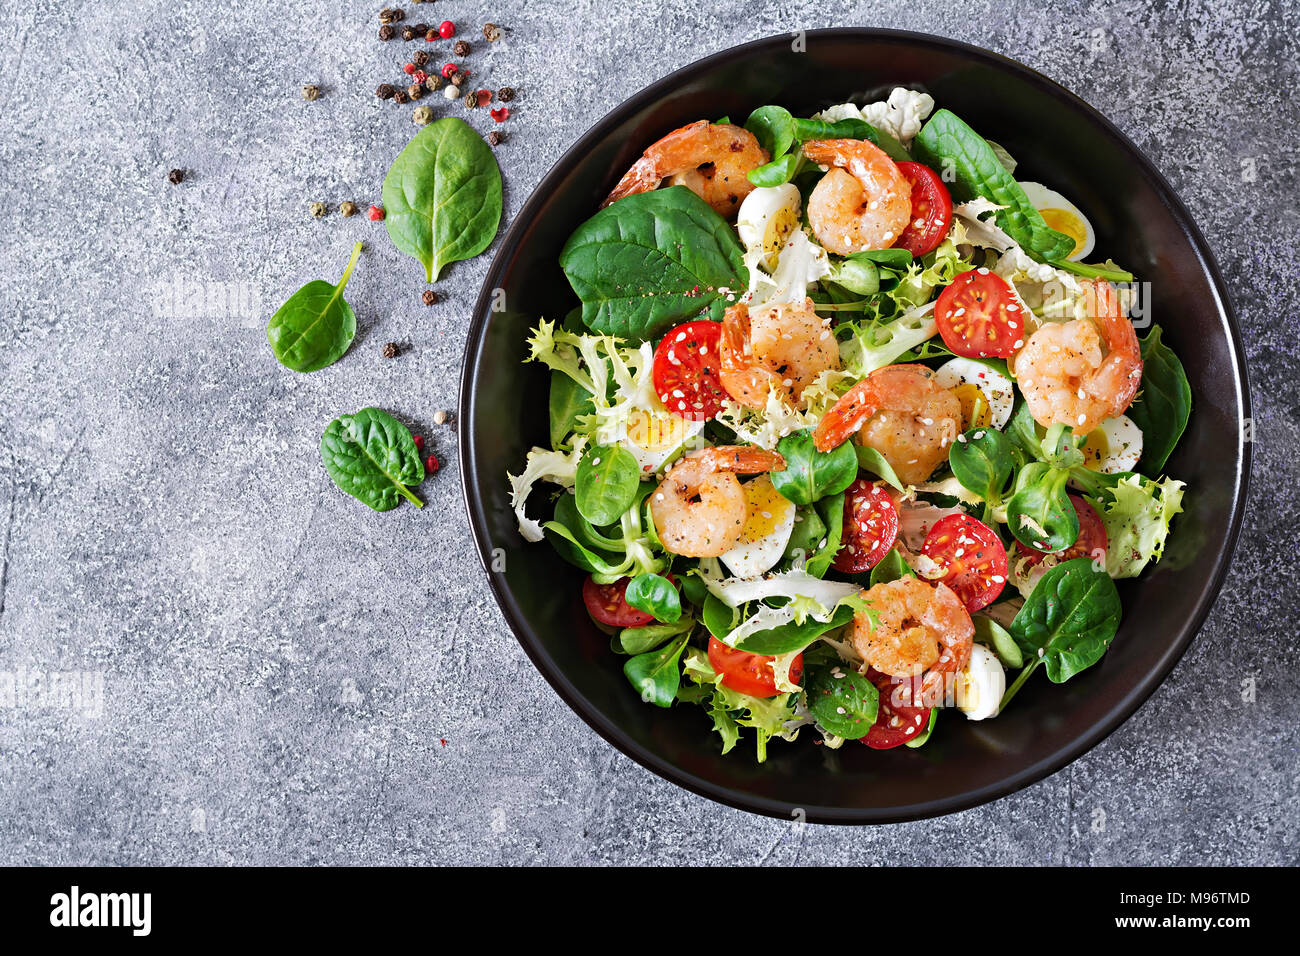 Healthy salad plate. Fresh seafood recipe. Grilled shrimps and fresh vegetable salad and egg. Grilled prawns. Healthy food. Flat lay. Top view - Stock Image